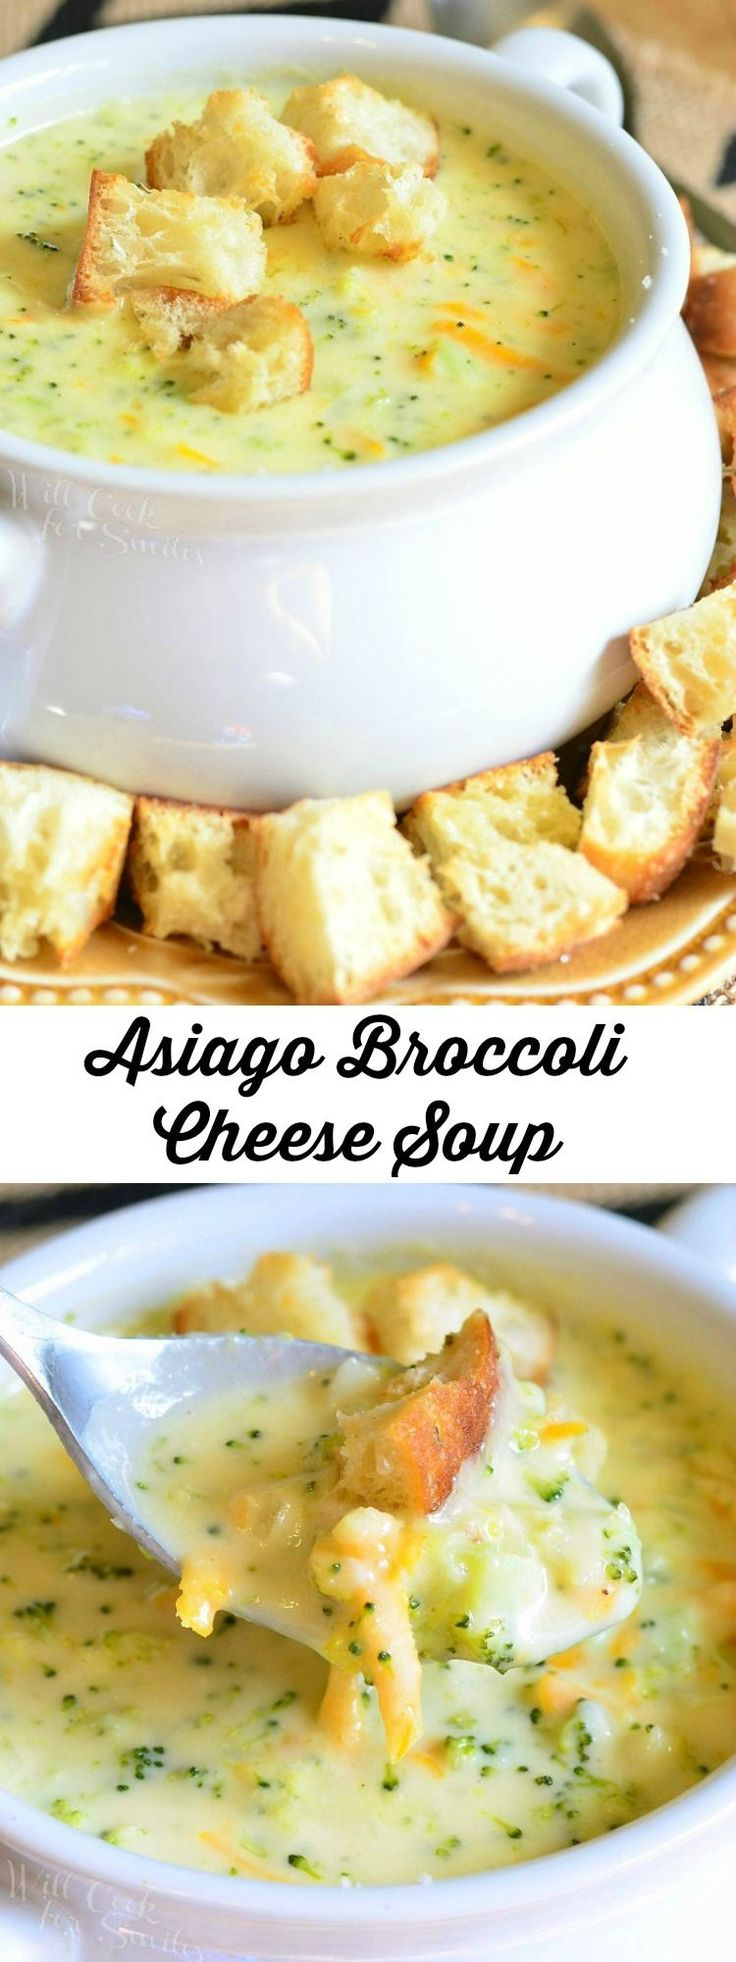 Asiago Broccoli Cheese Soup | from willcookforsmiles.com #comfortfood #soup…